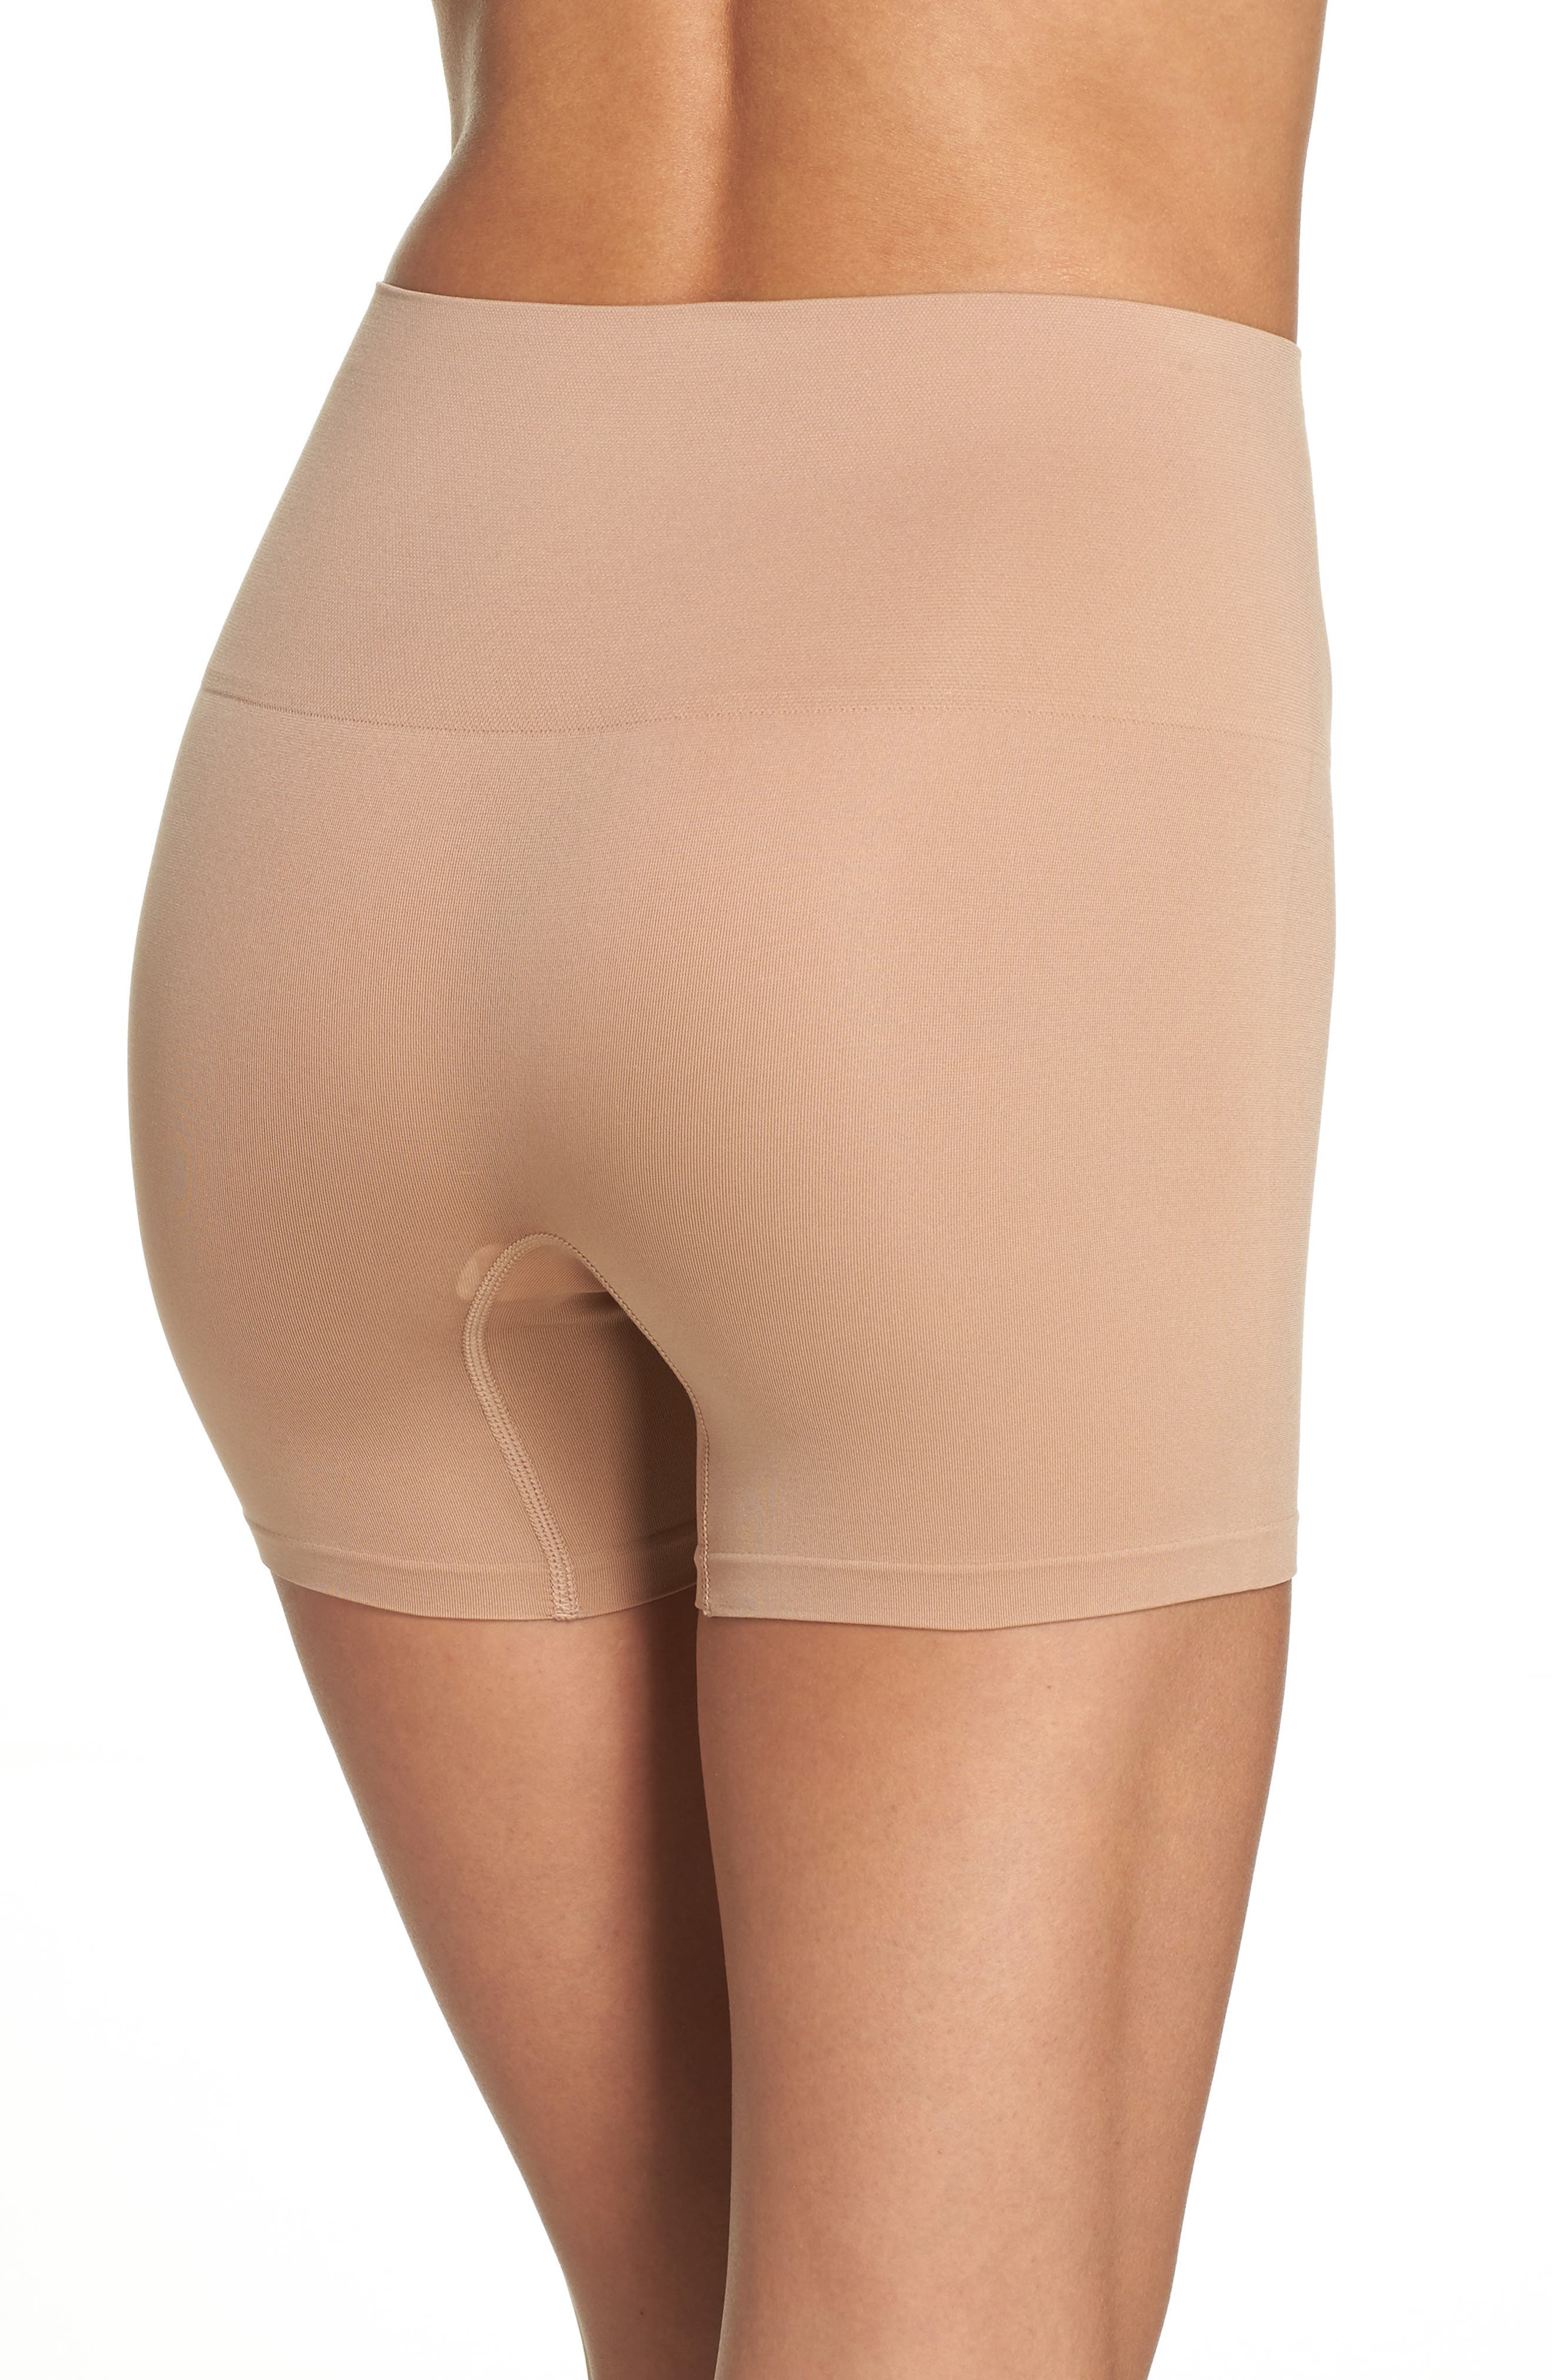 Ultralight Seamless Shaping Shorts,                             Alternate thumbnail 2, color,                             Almond